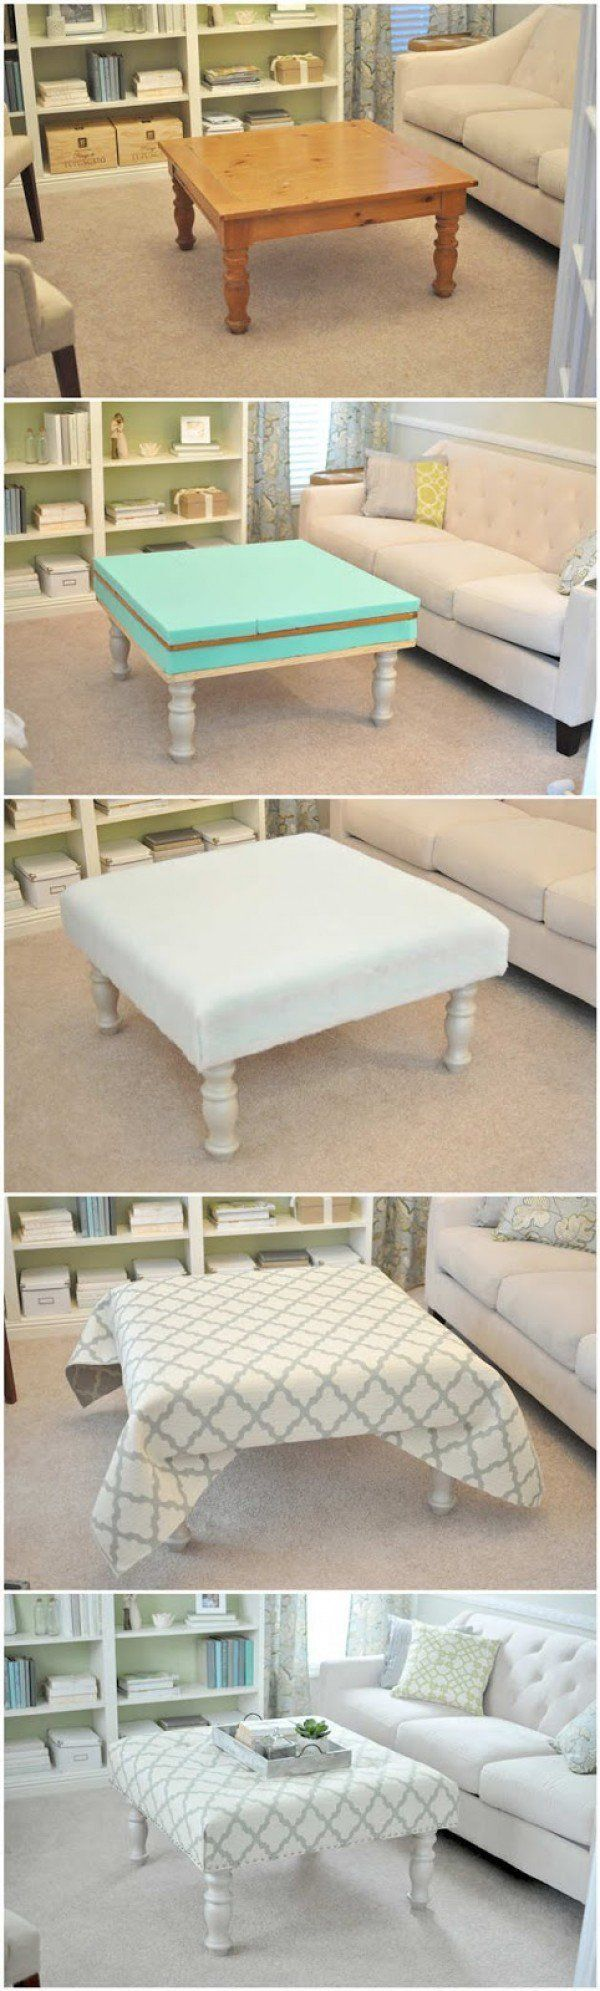 Thereu0027s No Other Piece Of Furniture So Versatile And Functional As An  Ottoman. It Can